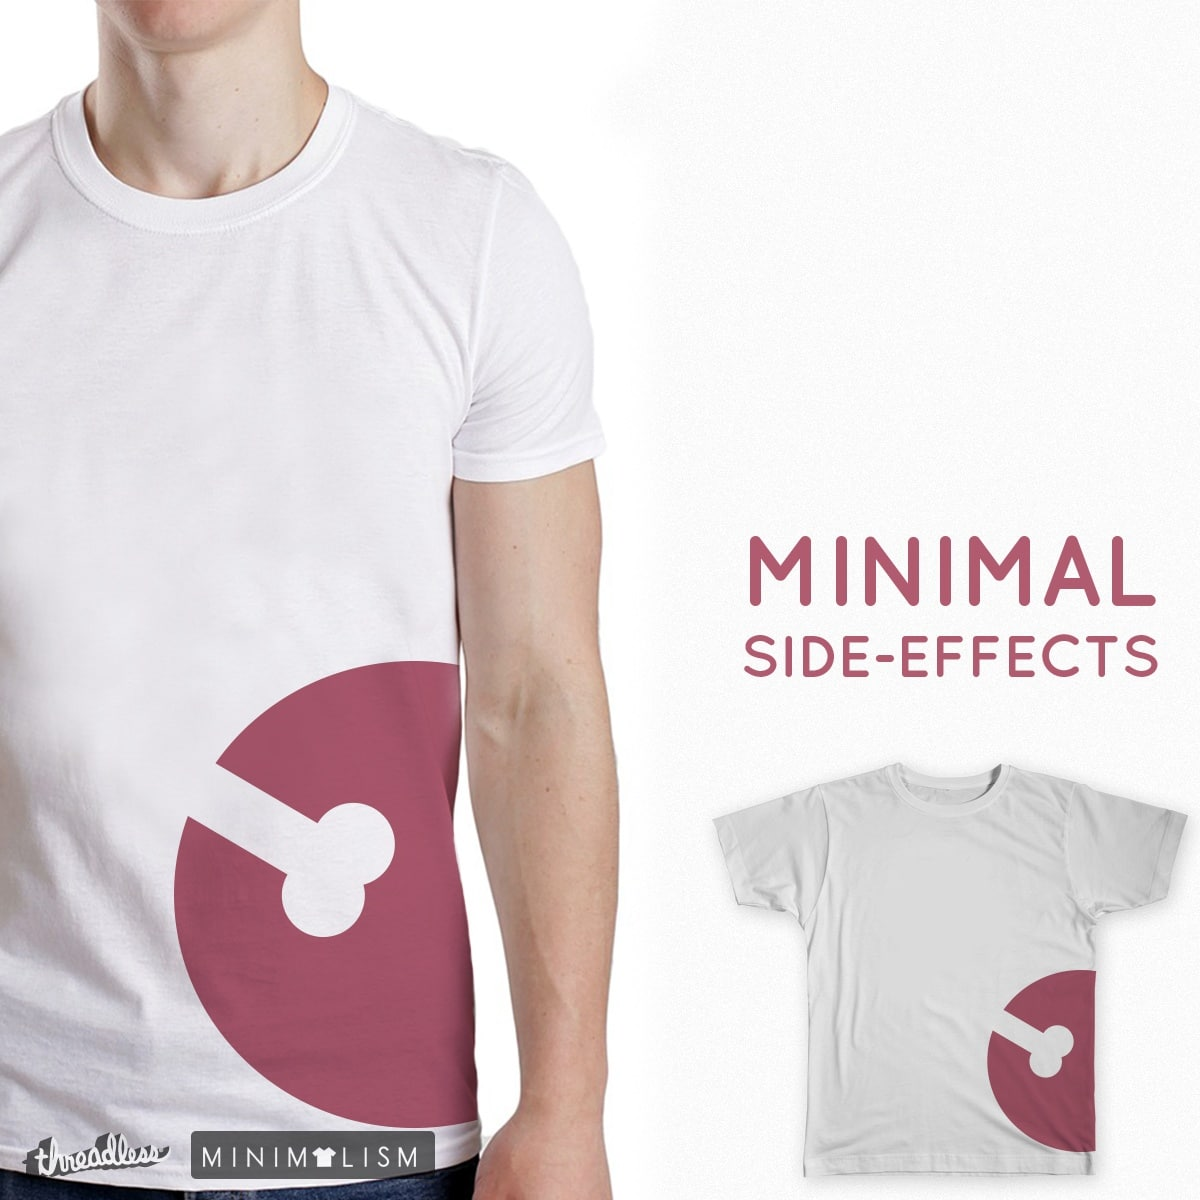 Minimal Side-Effects by tobyroberts on Threadless